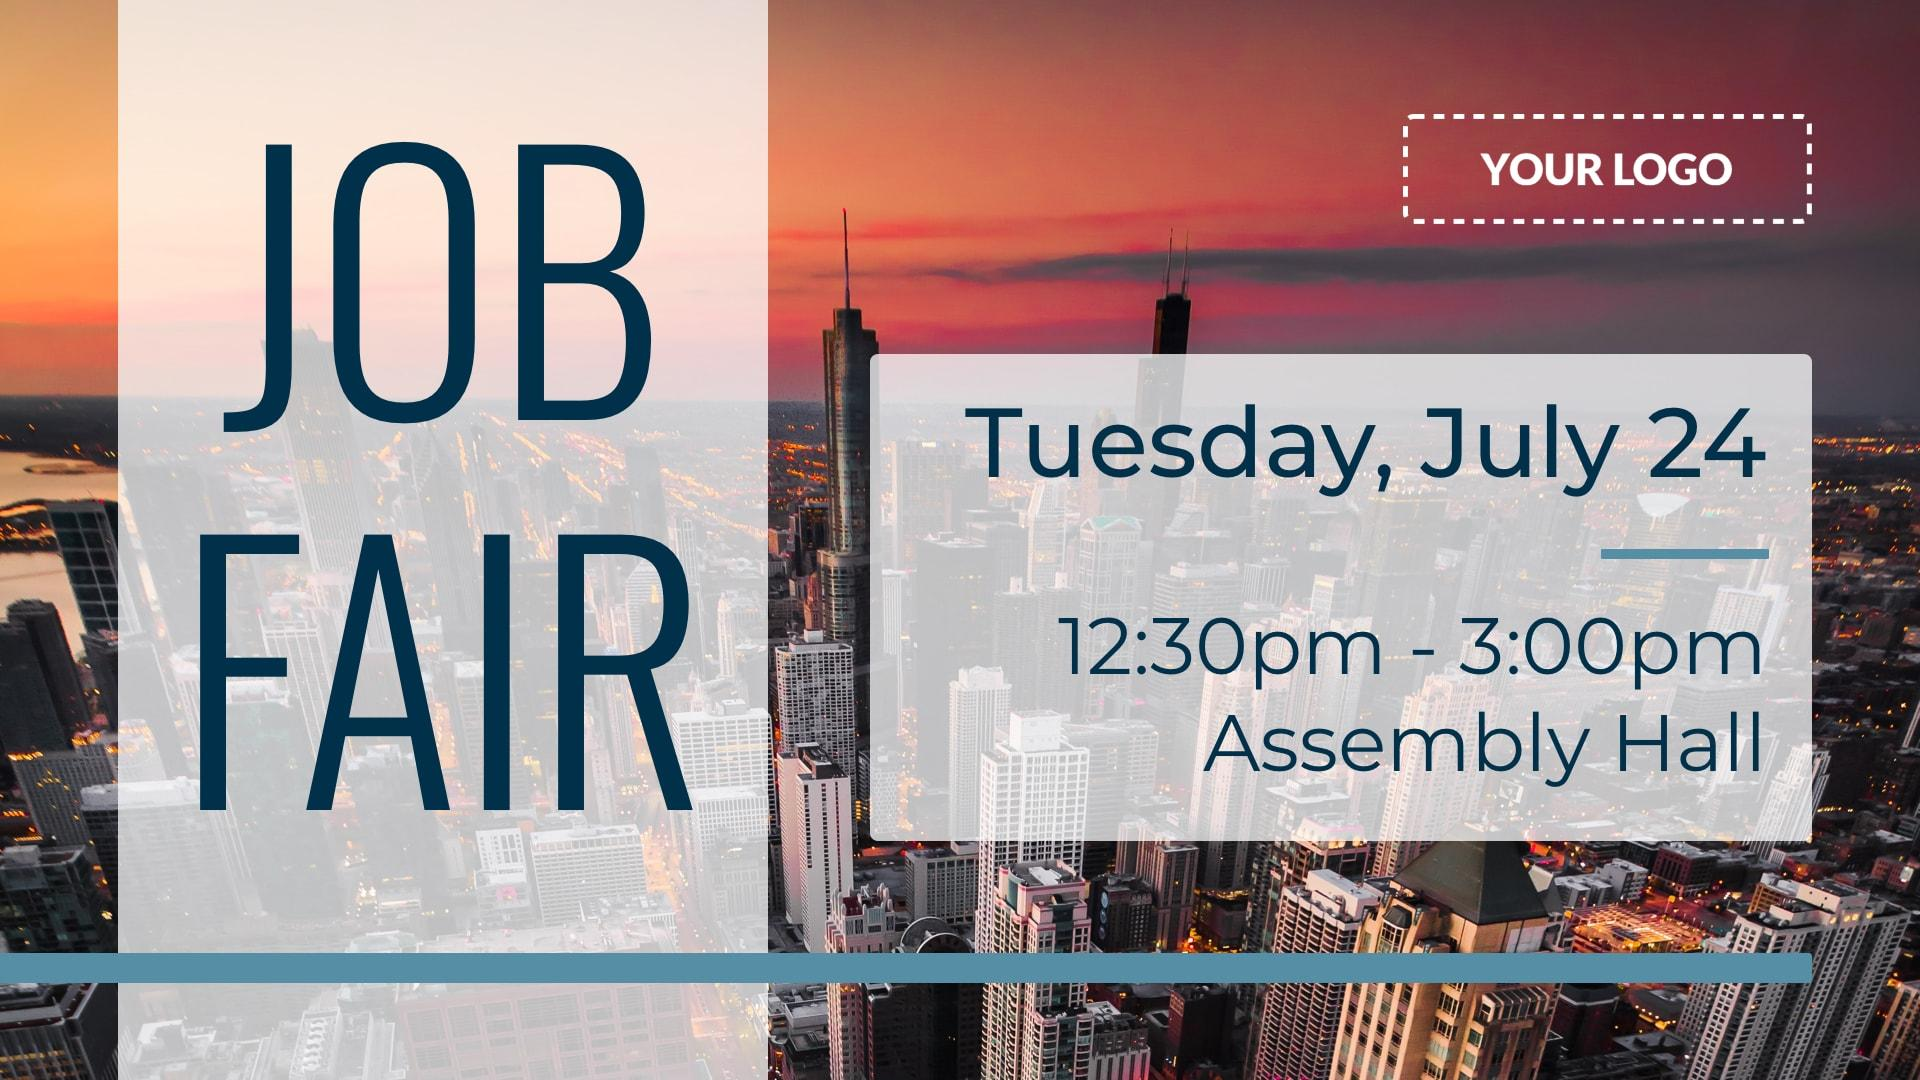 Job Fair Digital Signage Template